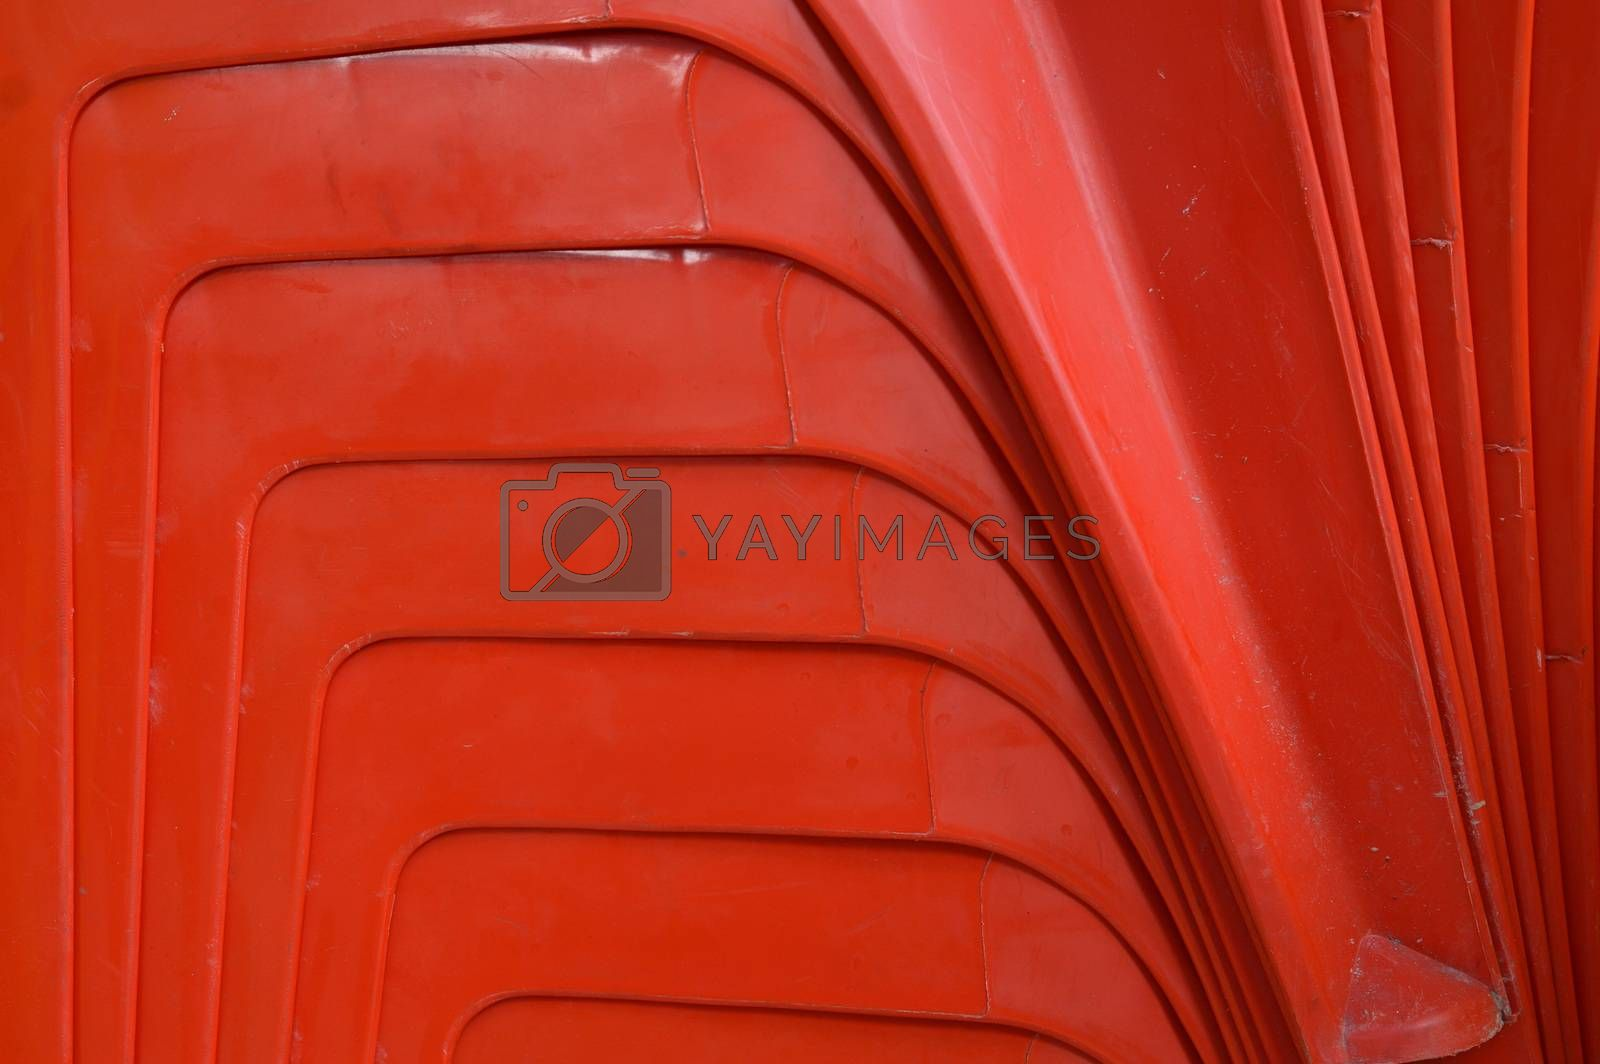 color abstract on the  red stacks of plastic chairs